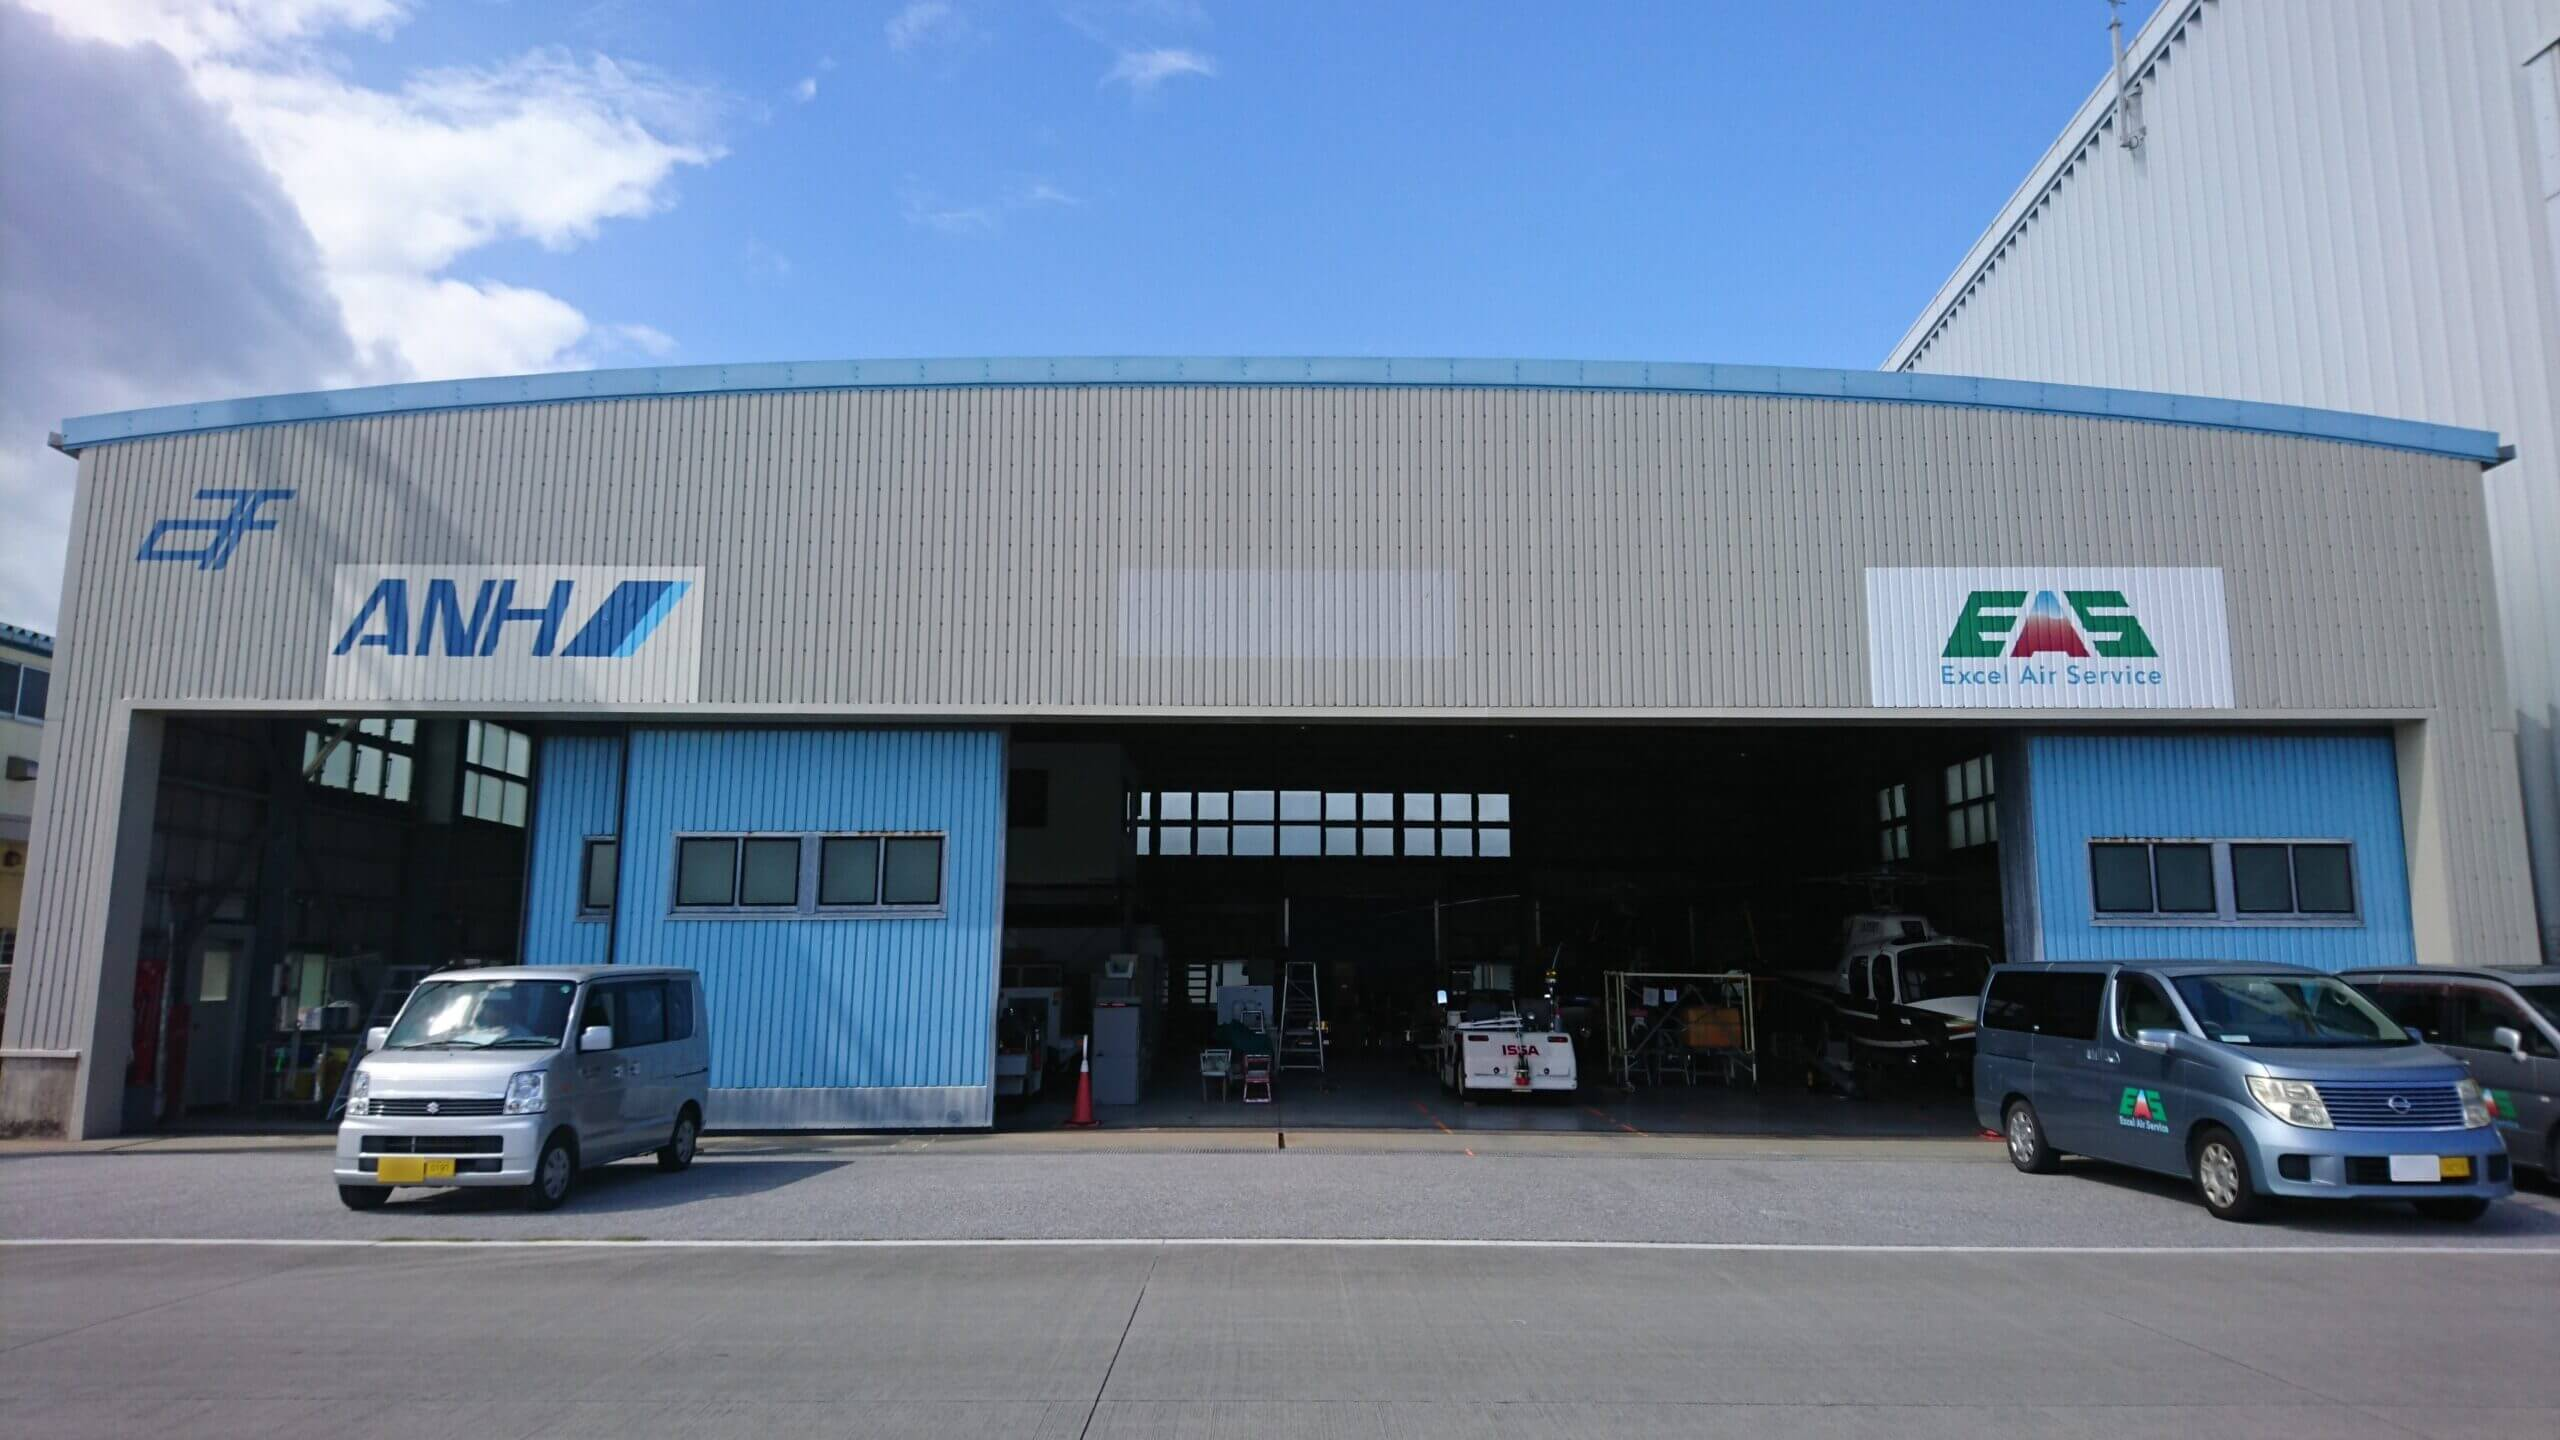 Small Aircraft Hangar (Naha Airport)